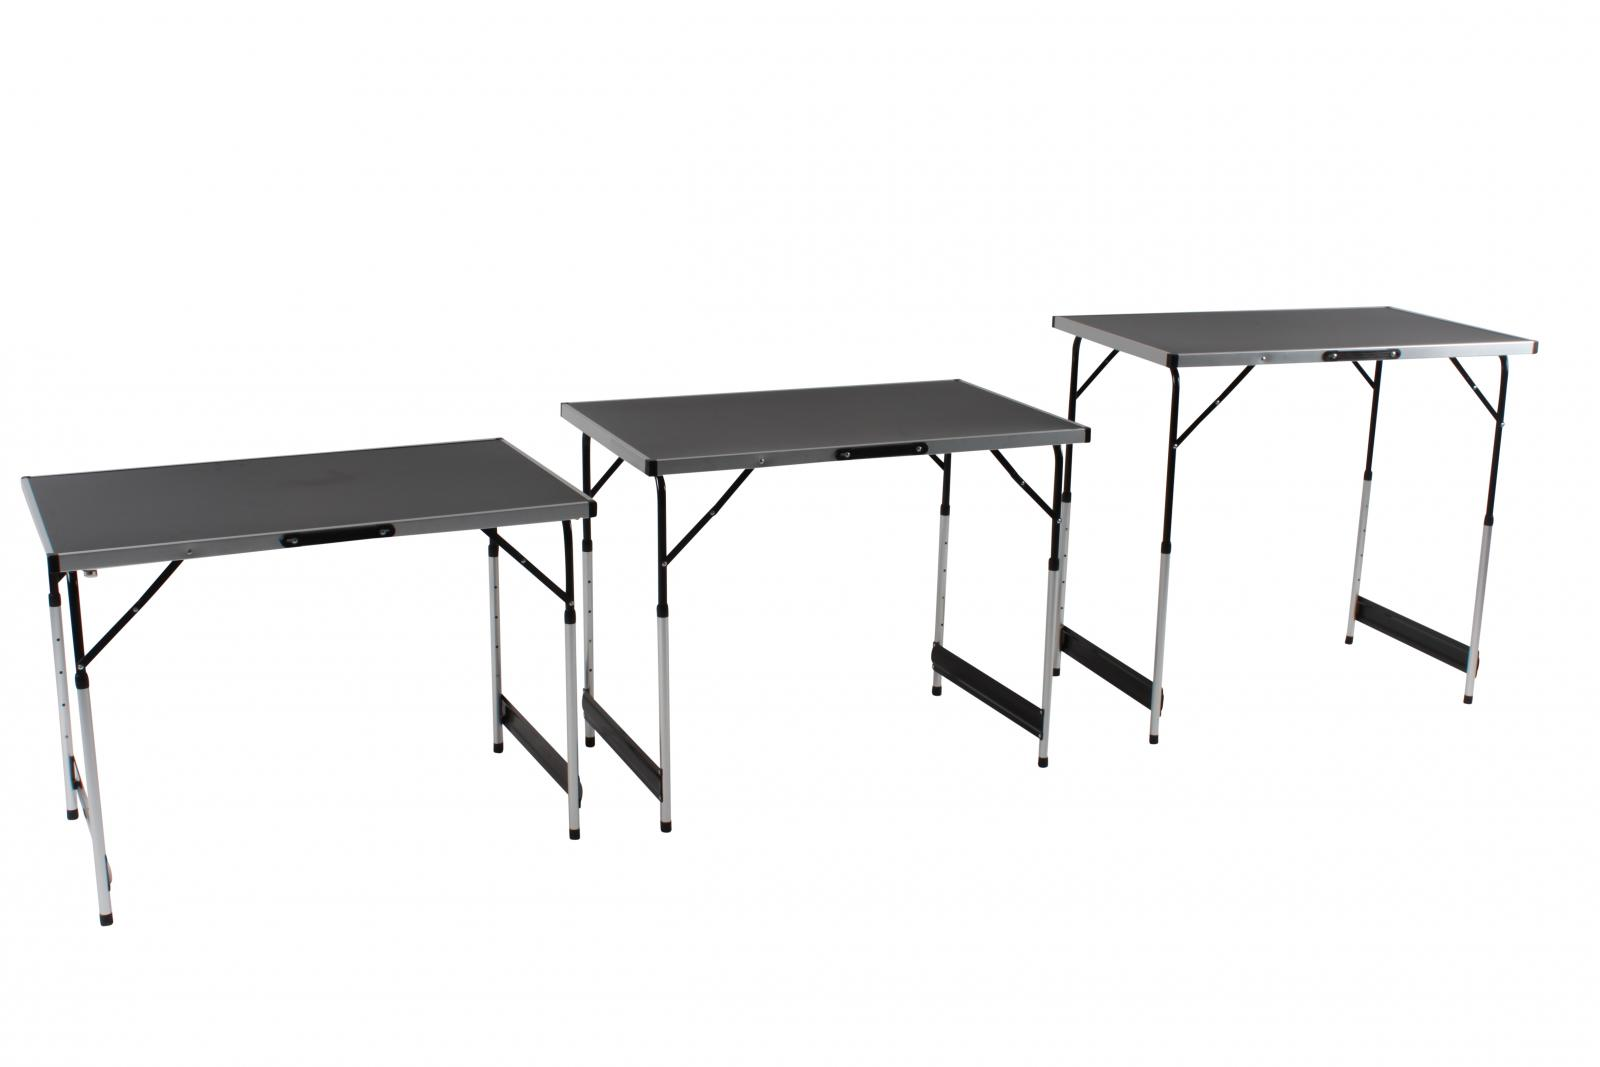 1m metre aluminium lightweight height adjustable folding table set of 3 tables - Small lightweight folding table ...